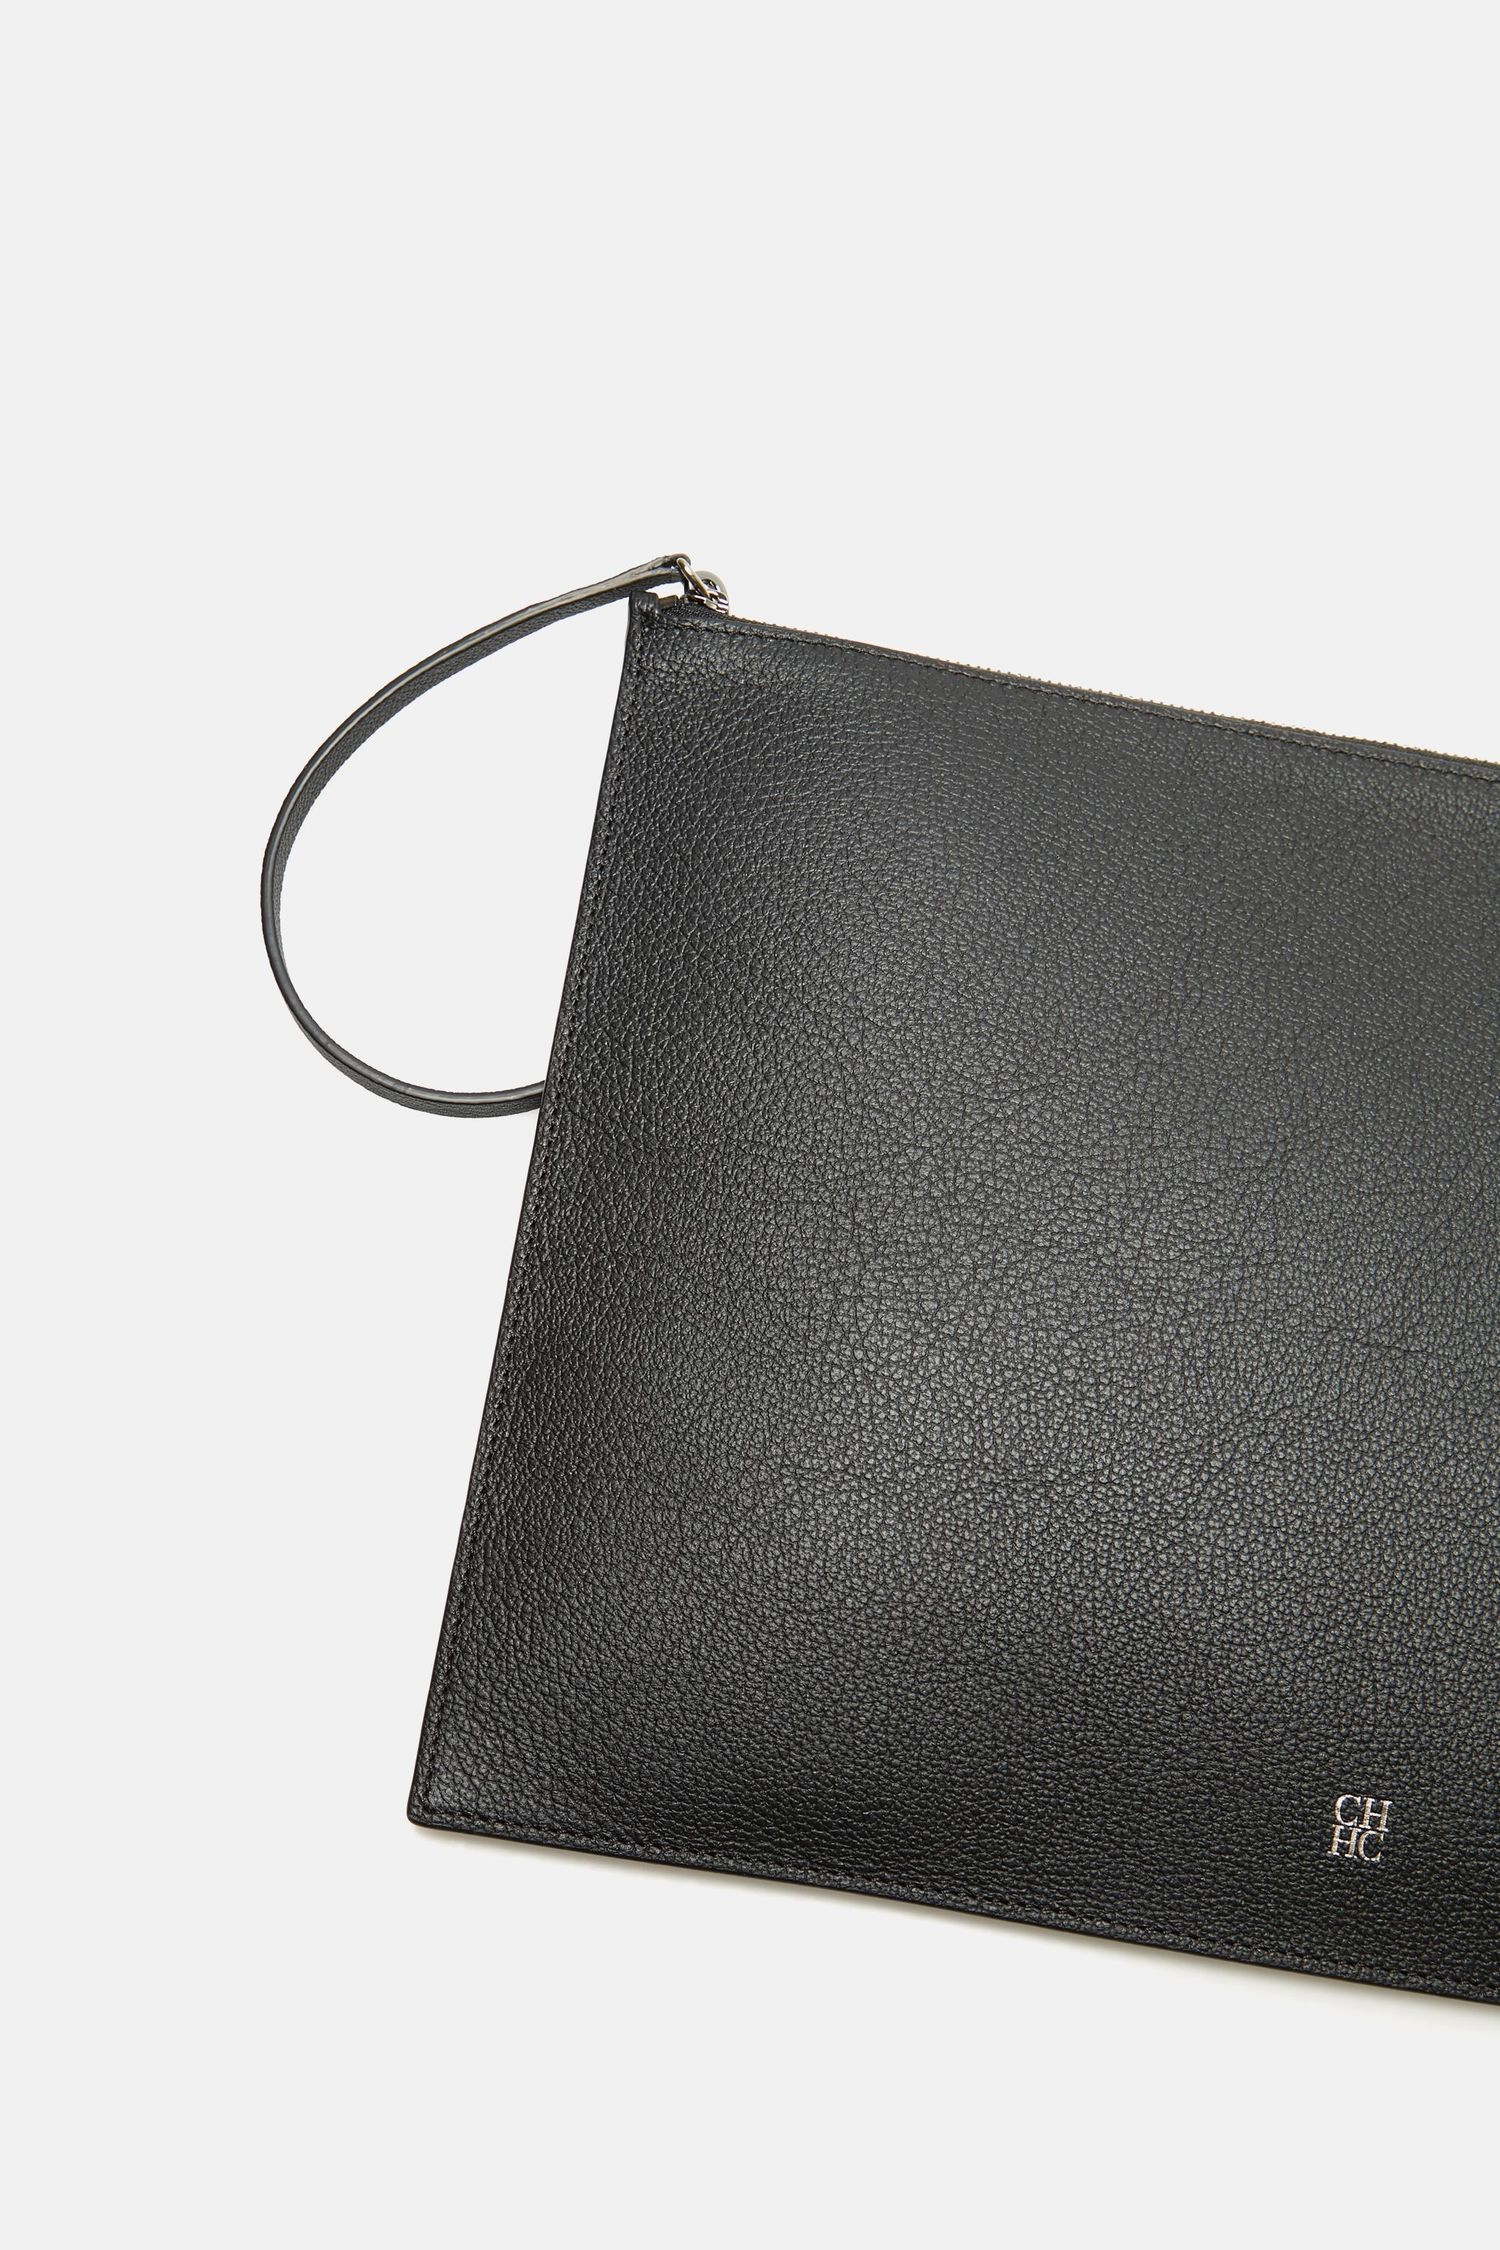 Universal pouch | Shopping